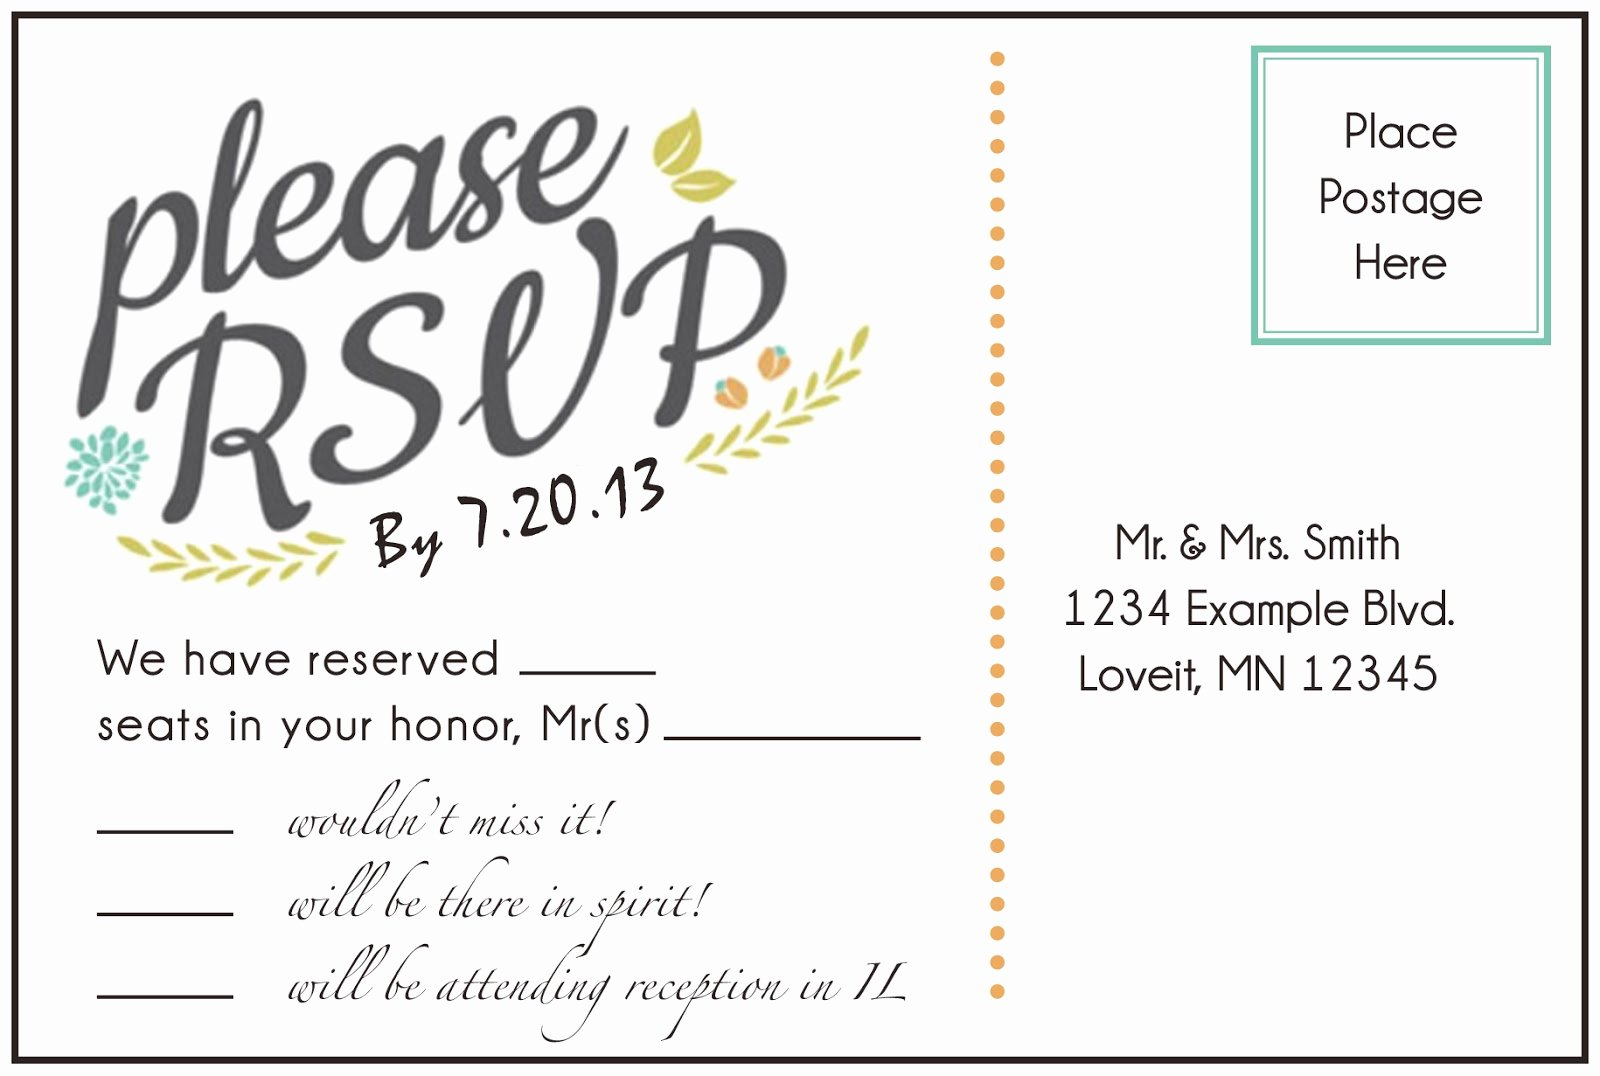 Wedding Rsvp Postcard Template Fresh 6 Best Of Able Postcard Templates Free Gift